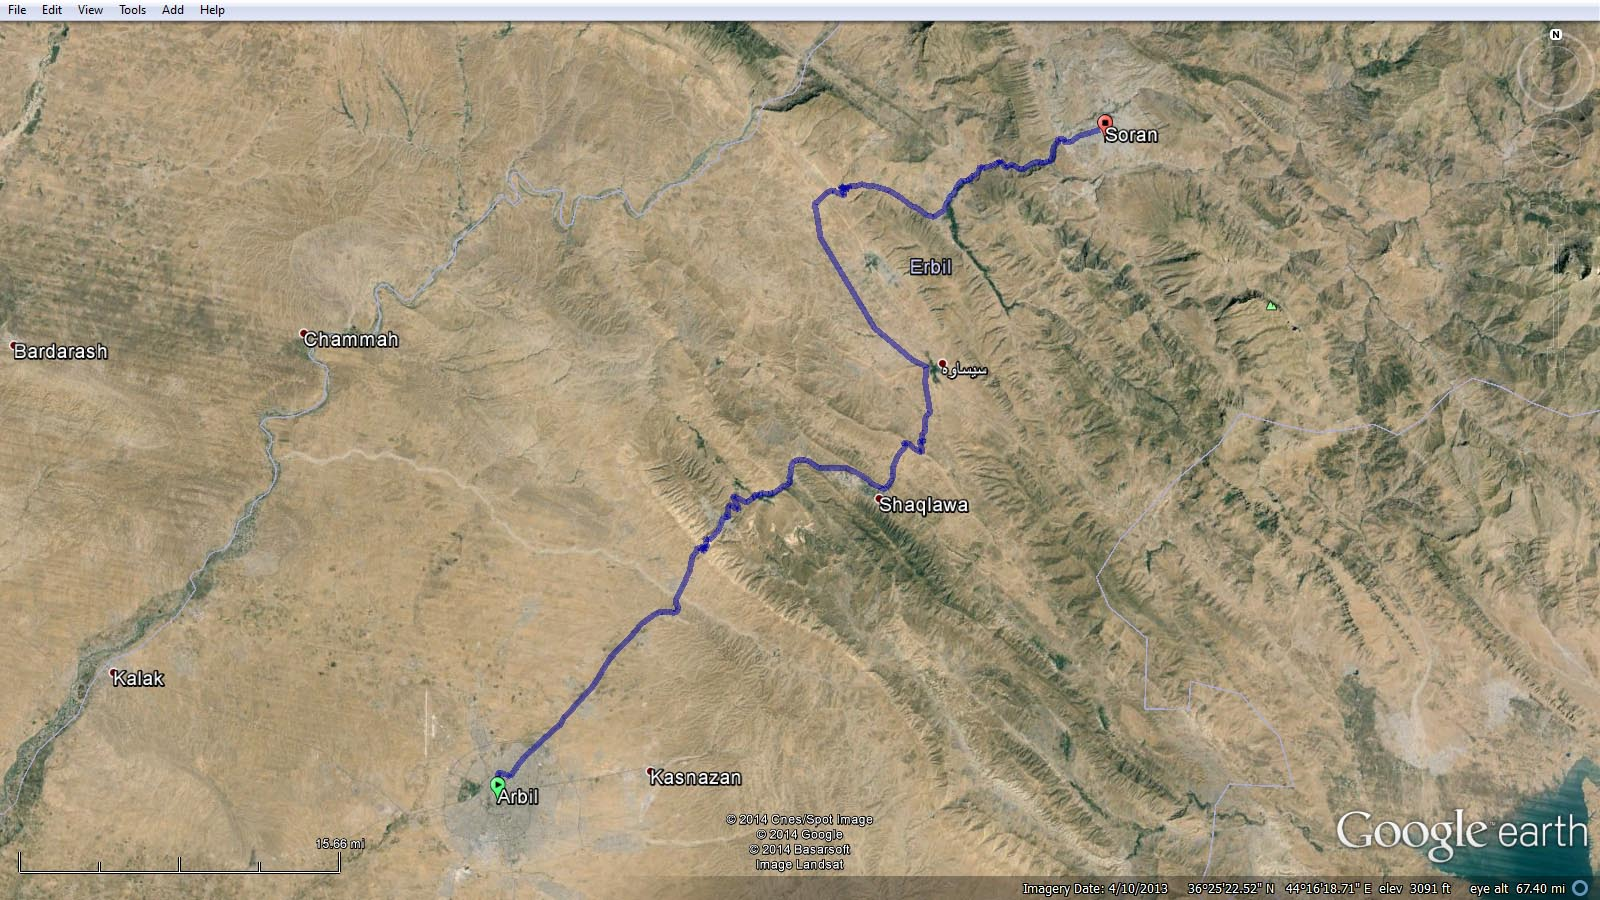 The route between Erbil and Soran